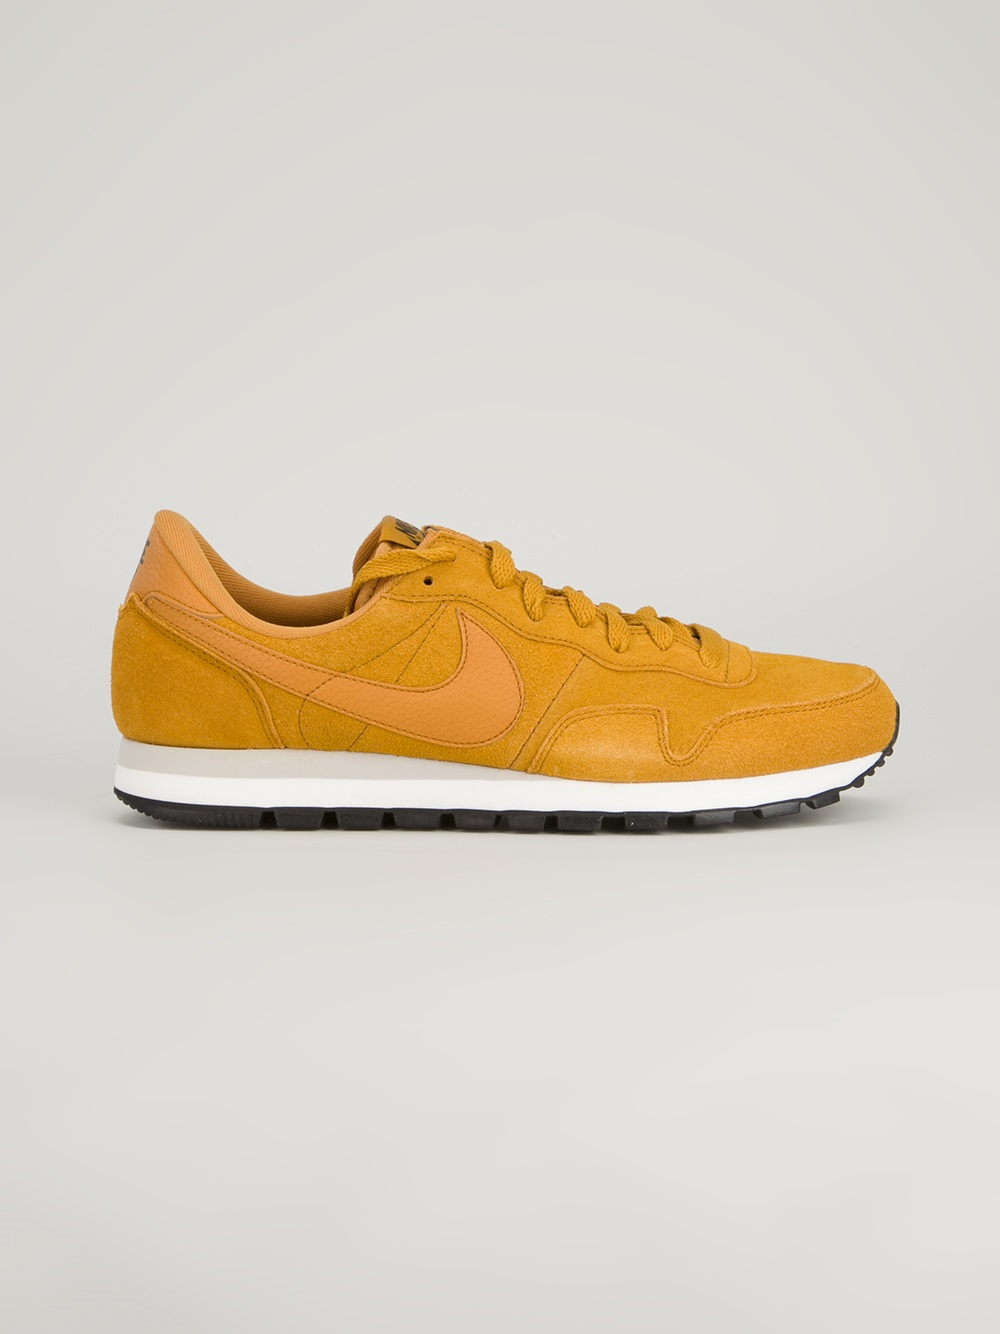 newest 21608 7b737 Lyst - Nike Air Pegasus 83 Suede Trainer in Yellow for Men